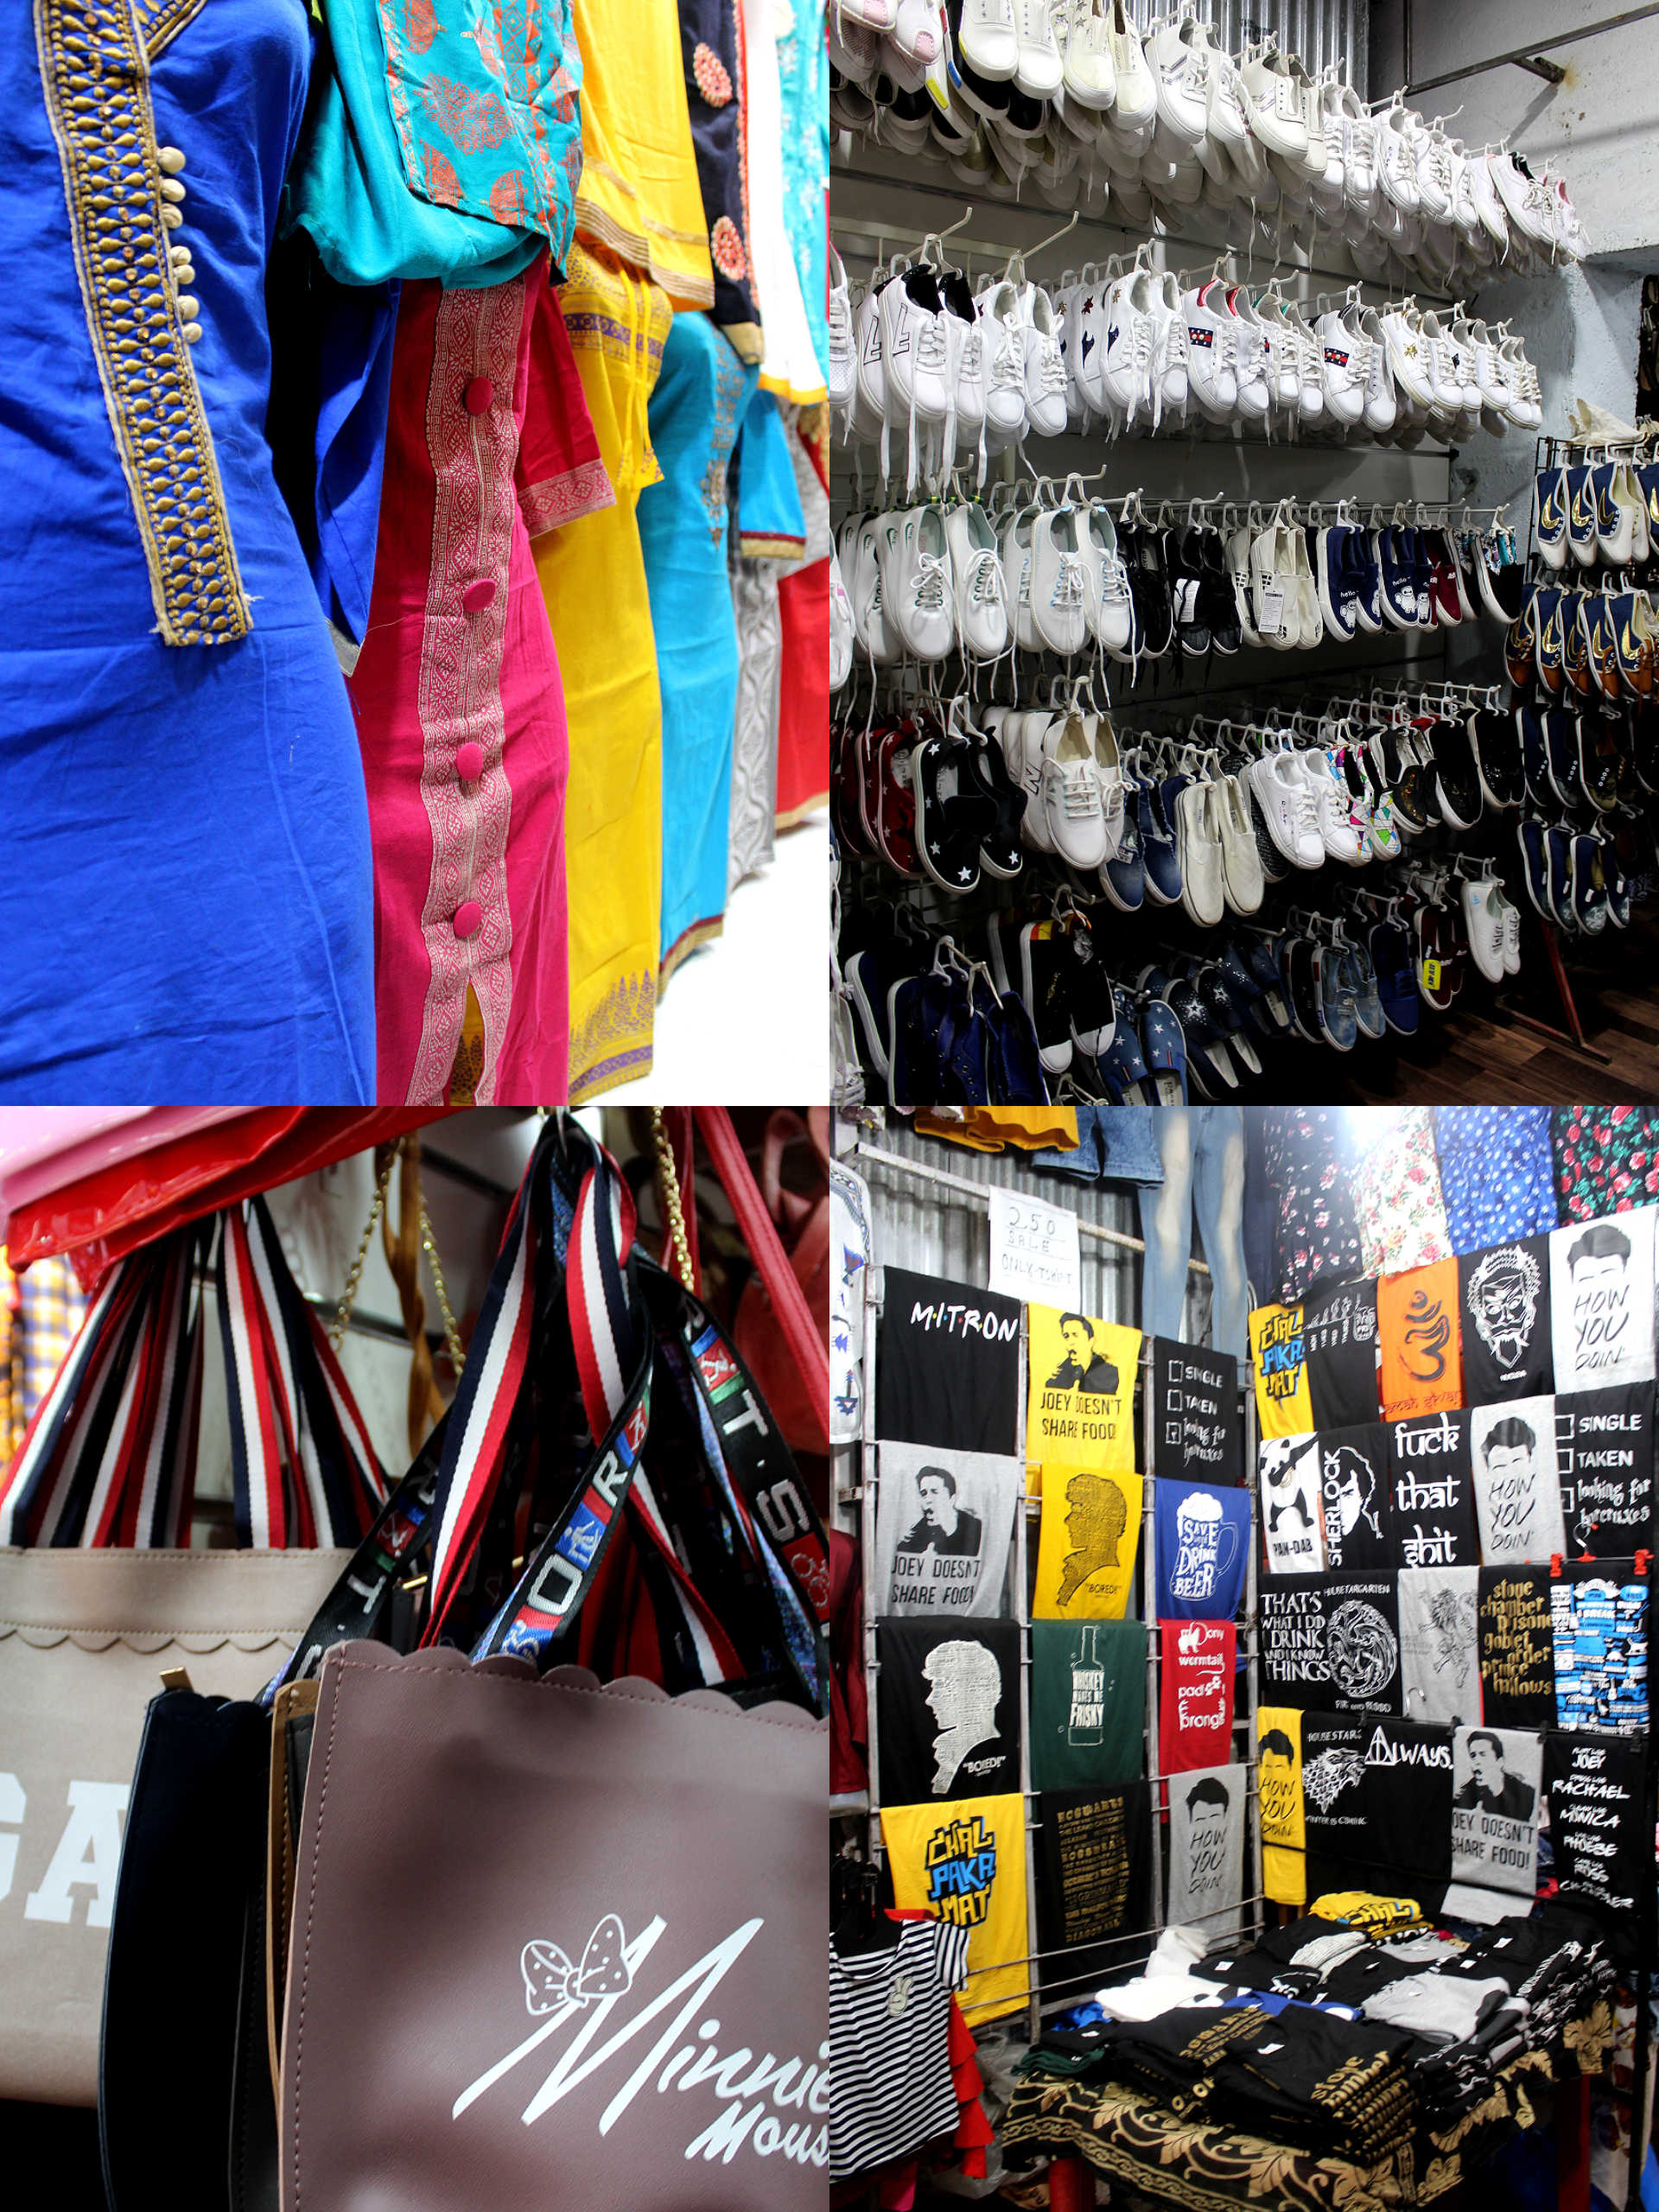 Top 7 Places For Street Shopping In Pune Junkjam Fashion Lifestyle Market Travel